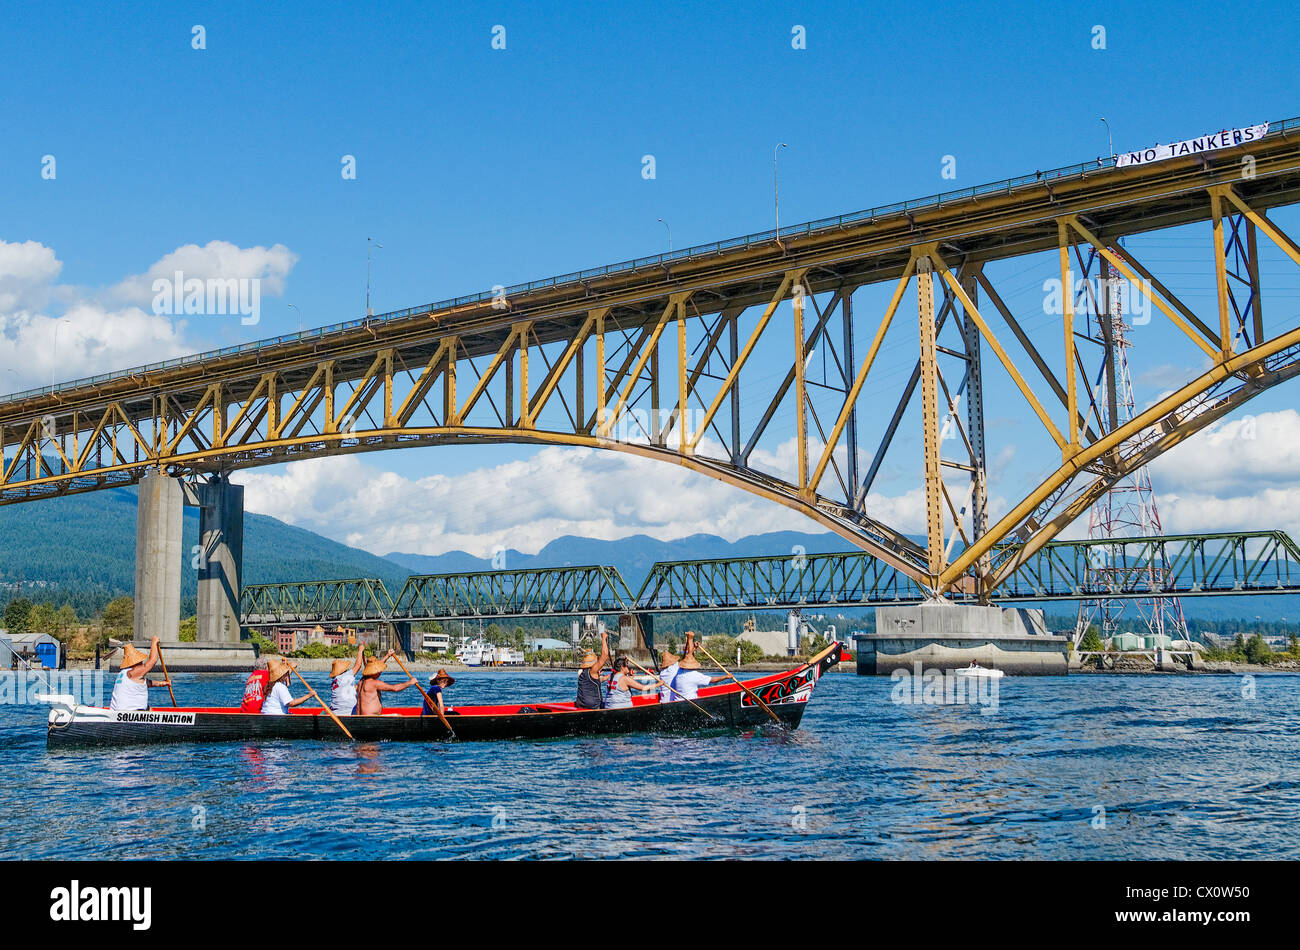 Squamish First Nations canoe approaches Iron Workers Memorial Bridge bearing No Tankers sign - Stock Image